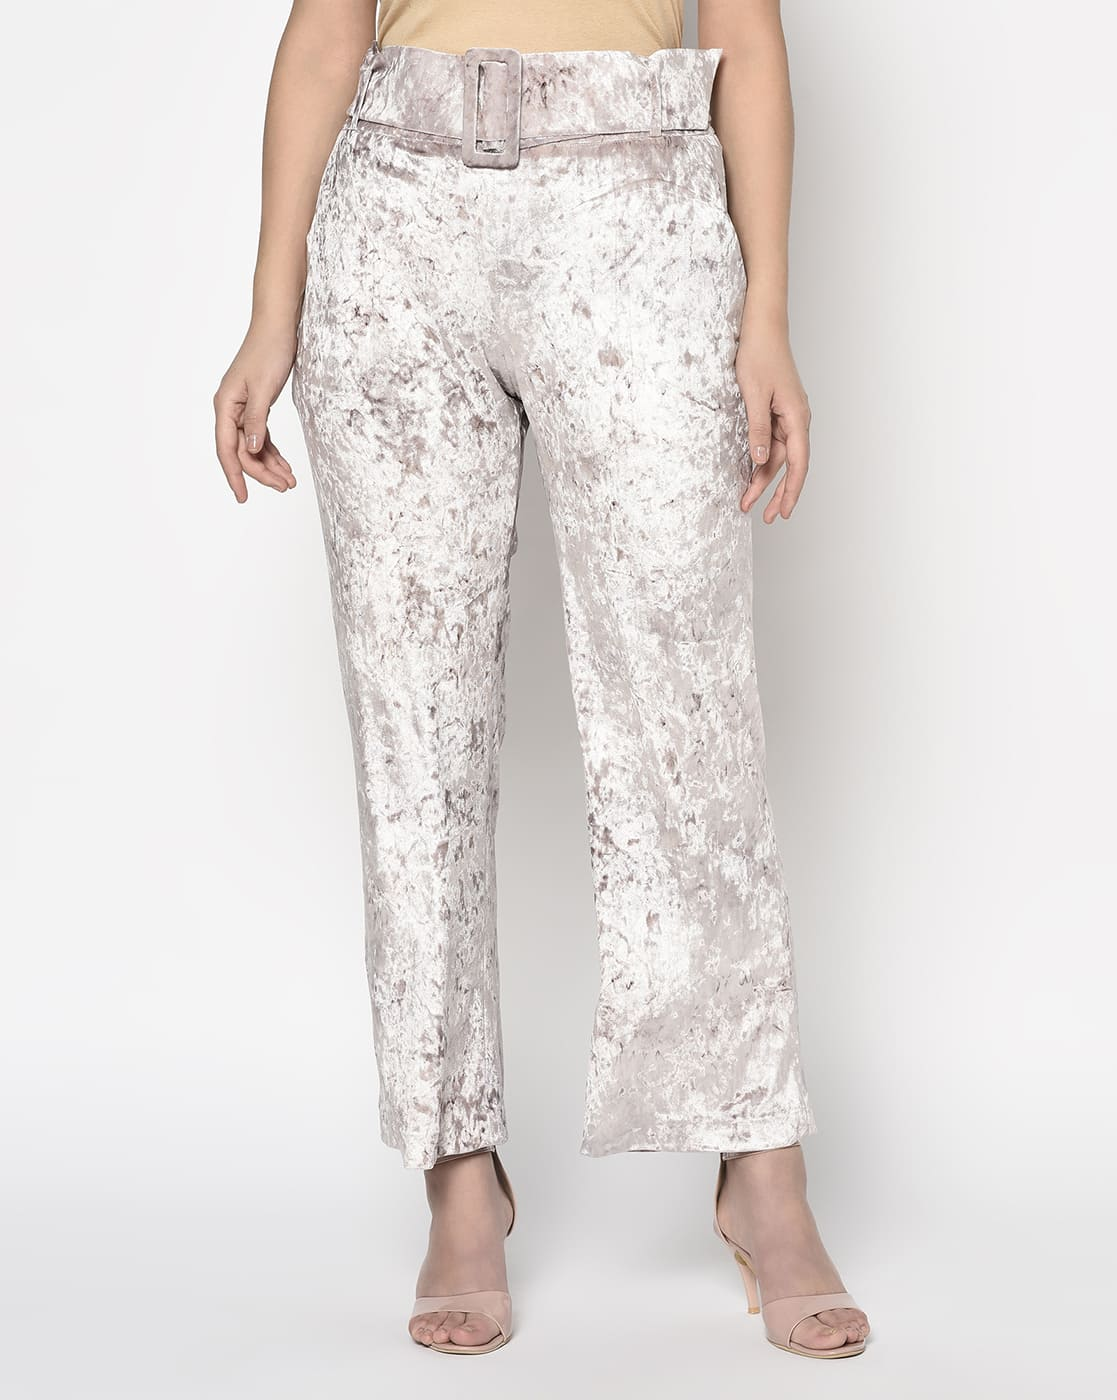 Nude Pink velvet high waist pant with belt